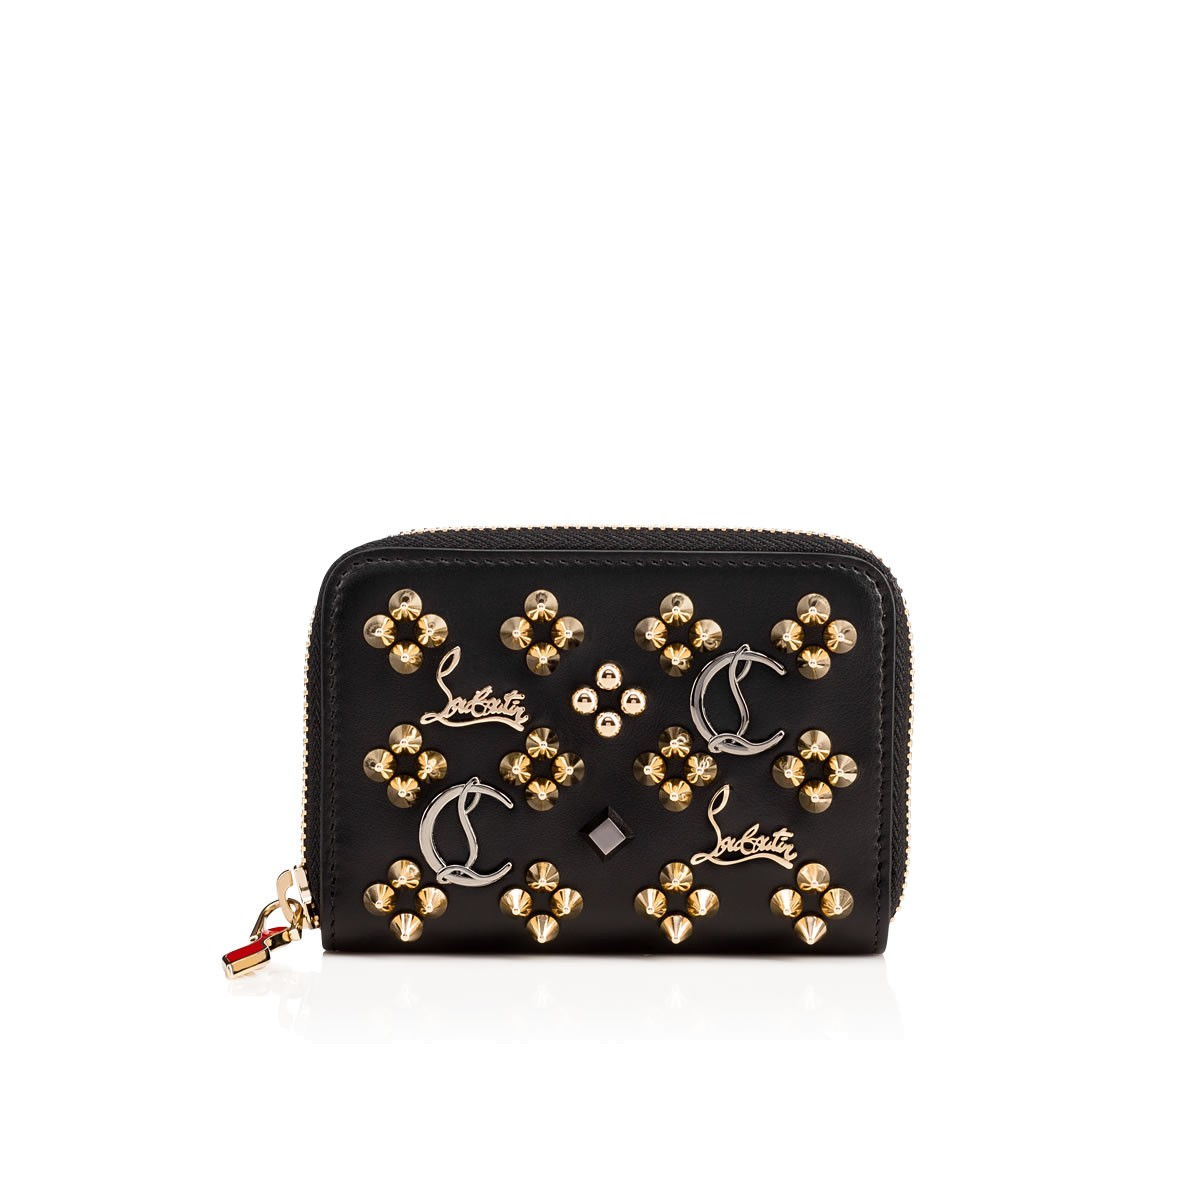 5ed31954606 Panettone Coin Purse Black Calfskin - Accessories - Christian Louboutin